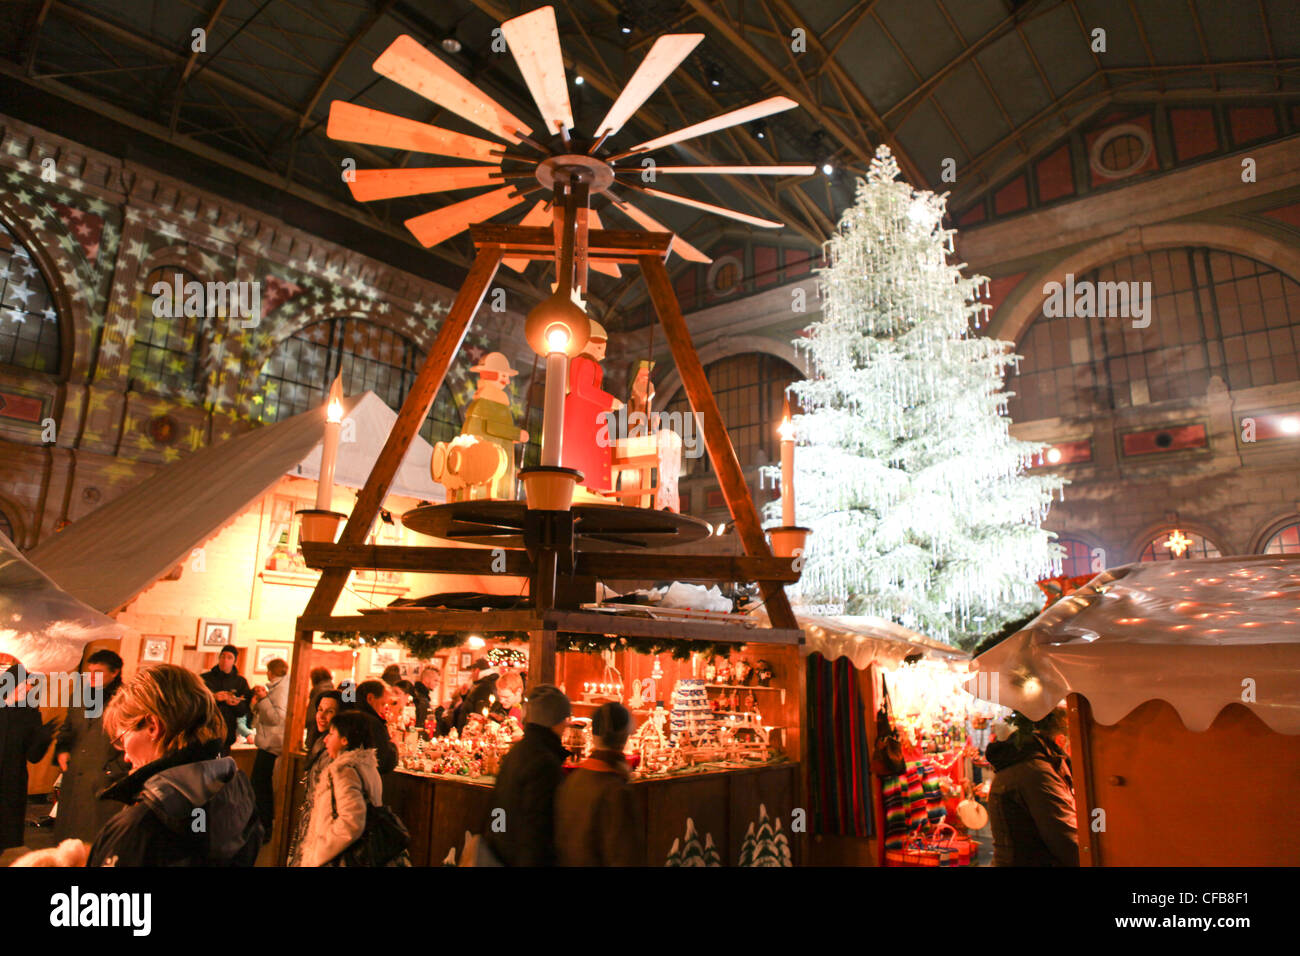 Town, City, canton, Zurich, Switzerland, Europe, event, Christmas, Advent, market, railway station, Christmas fair - Stock Image